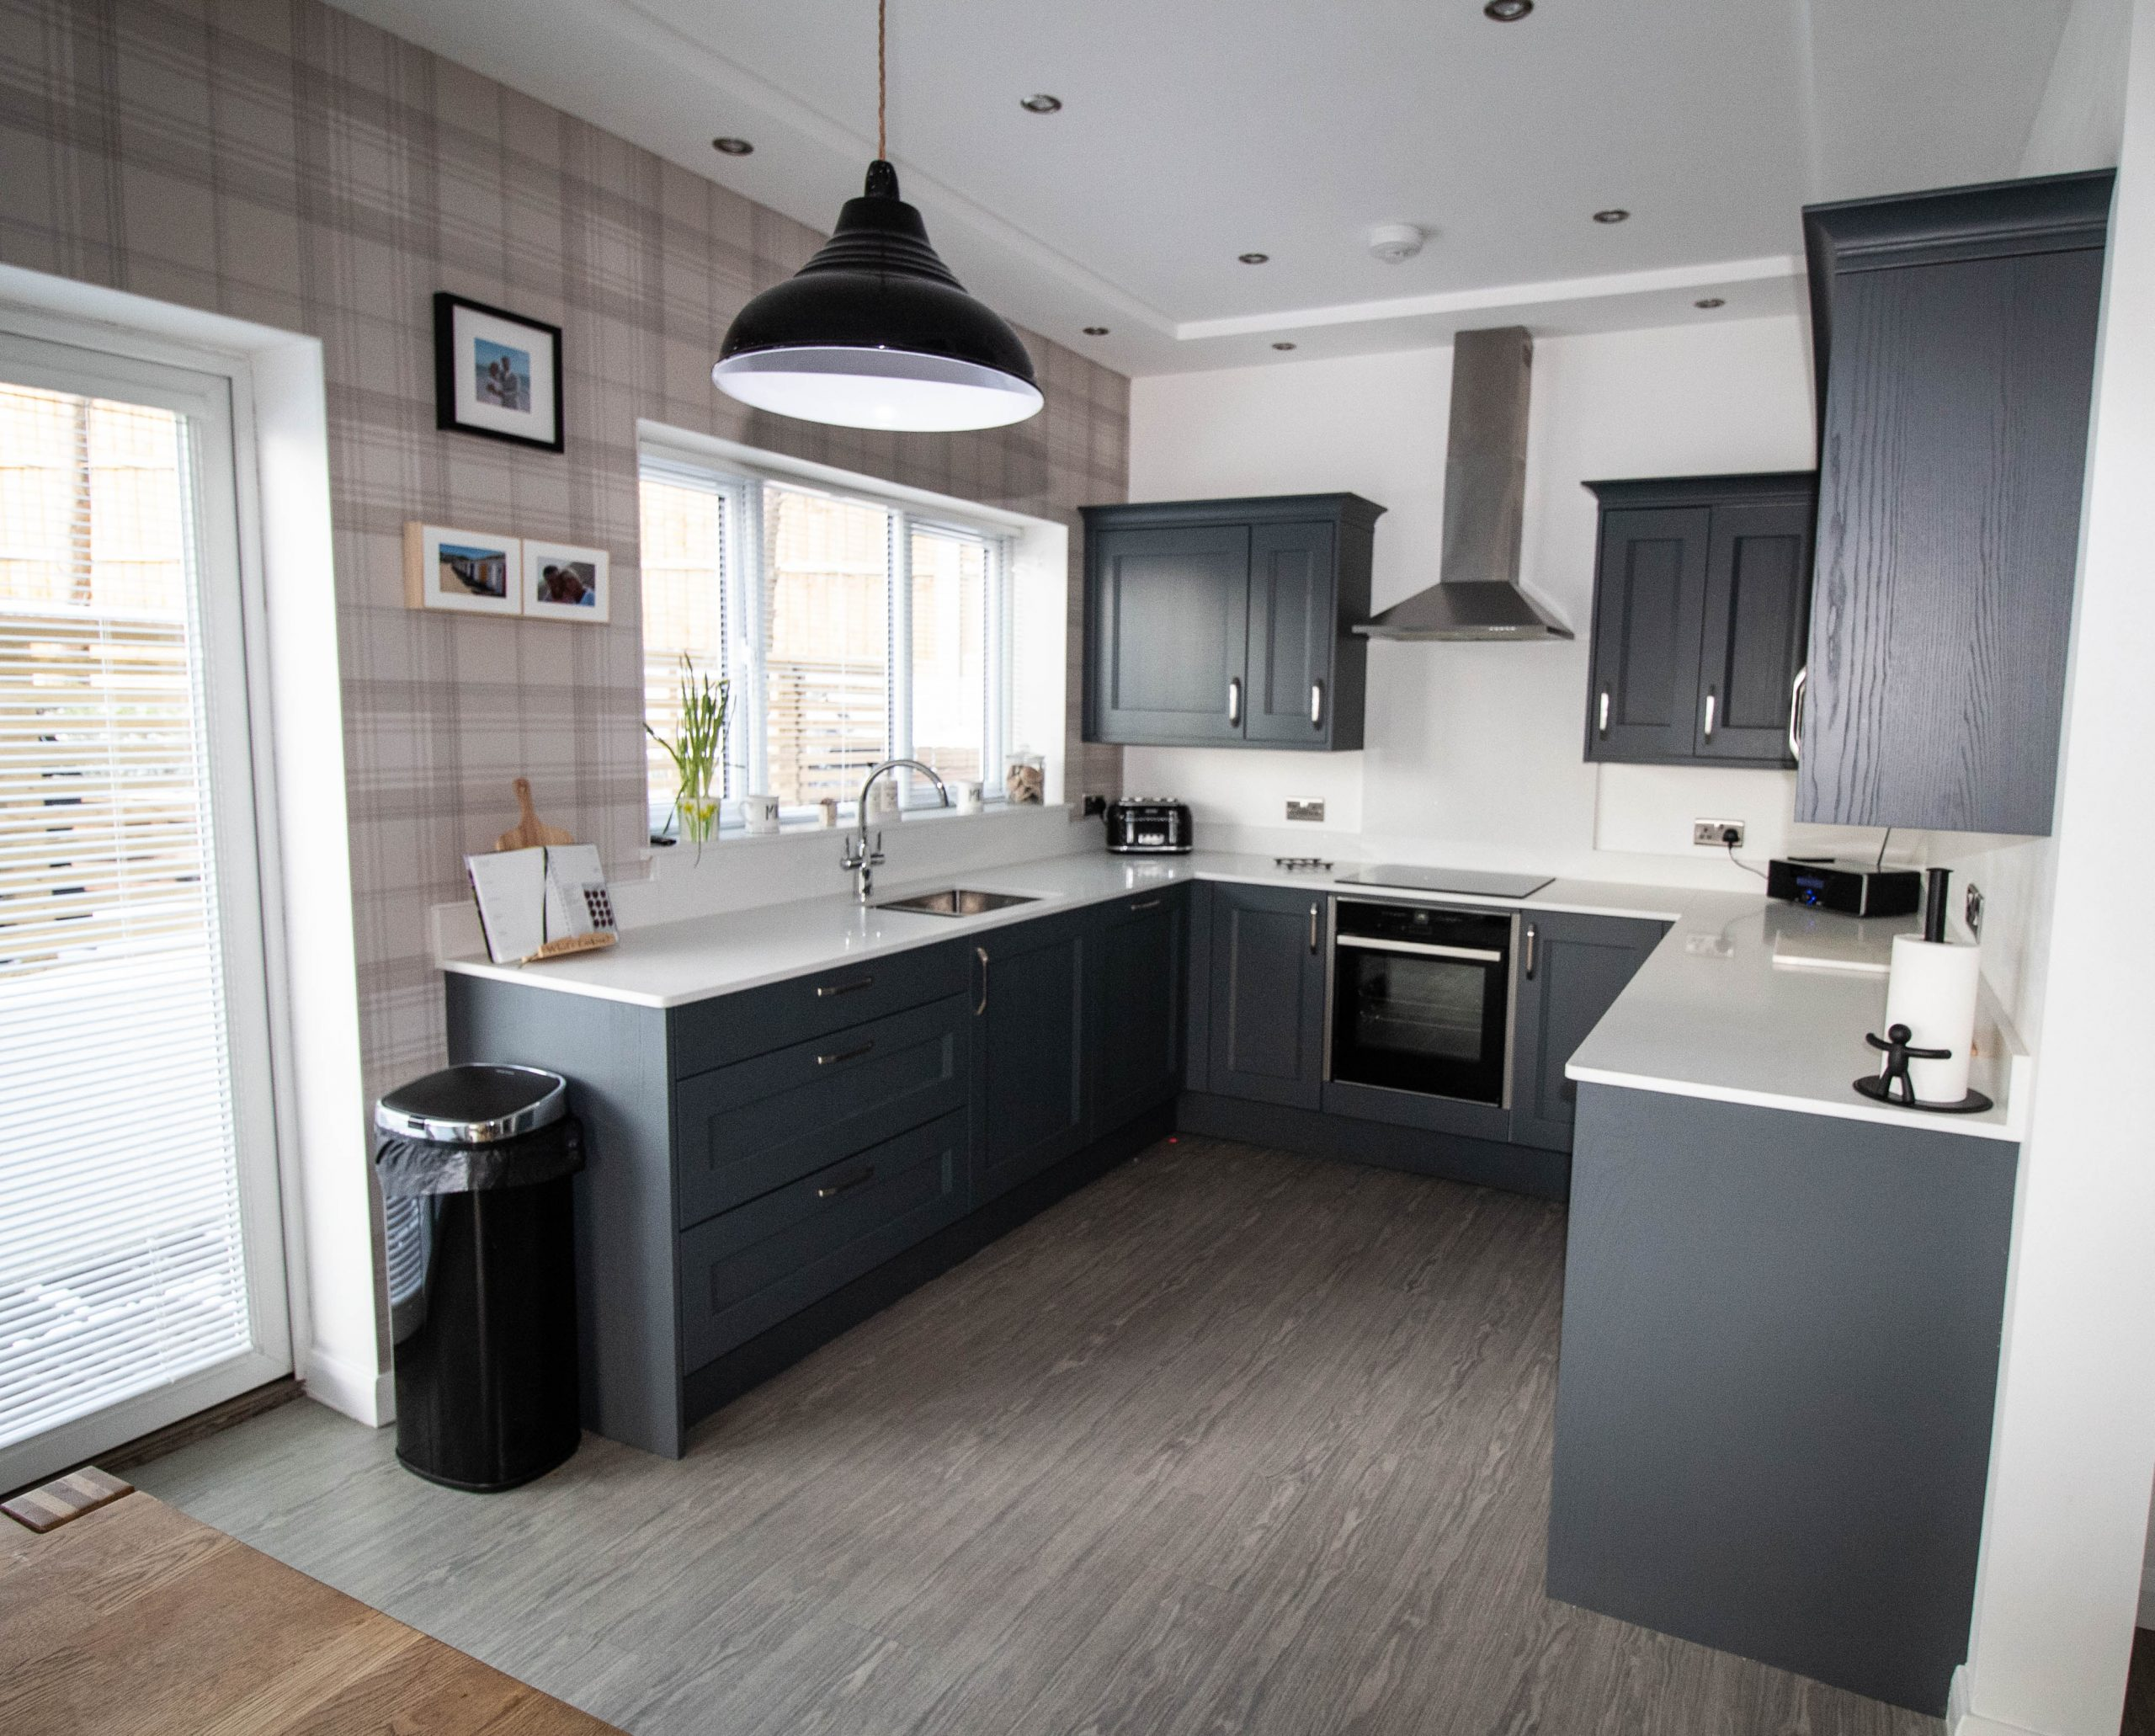 Kew painted shaker kitchen in seal grey, Noble Kitchens